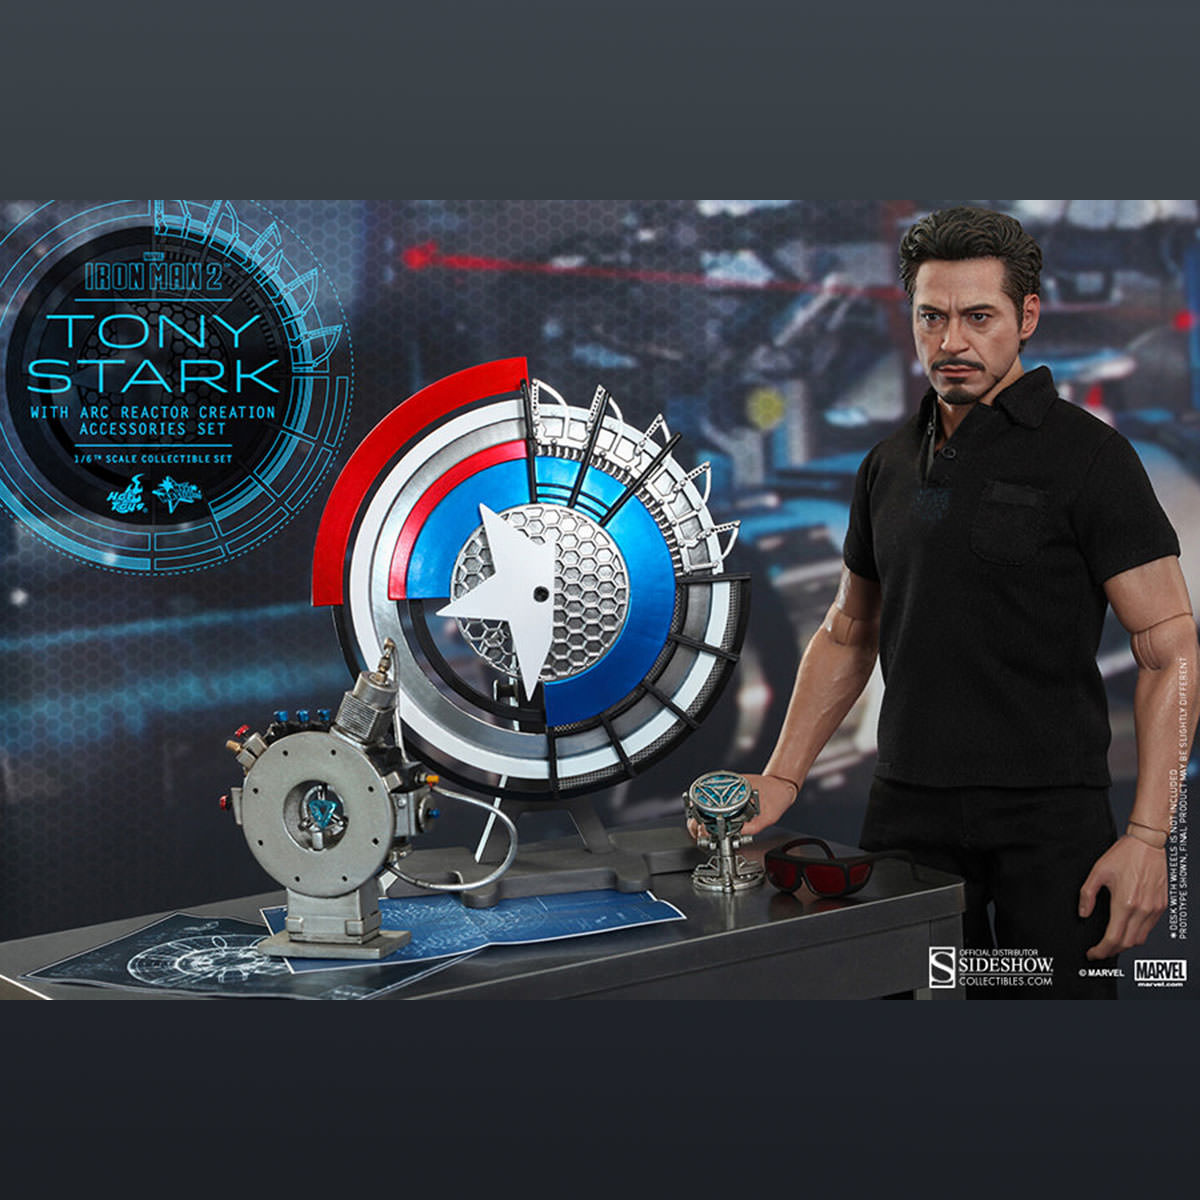 Hot Toys Iron Man 2 Tony Stark 1/6th Scale Collectible ...